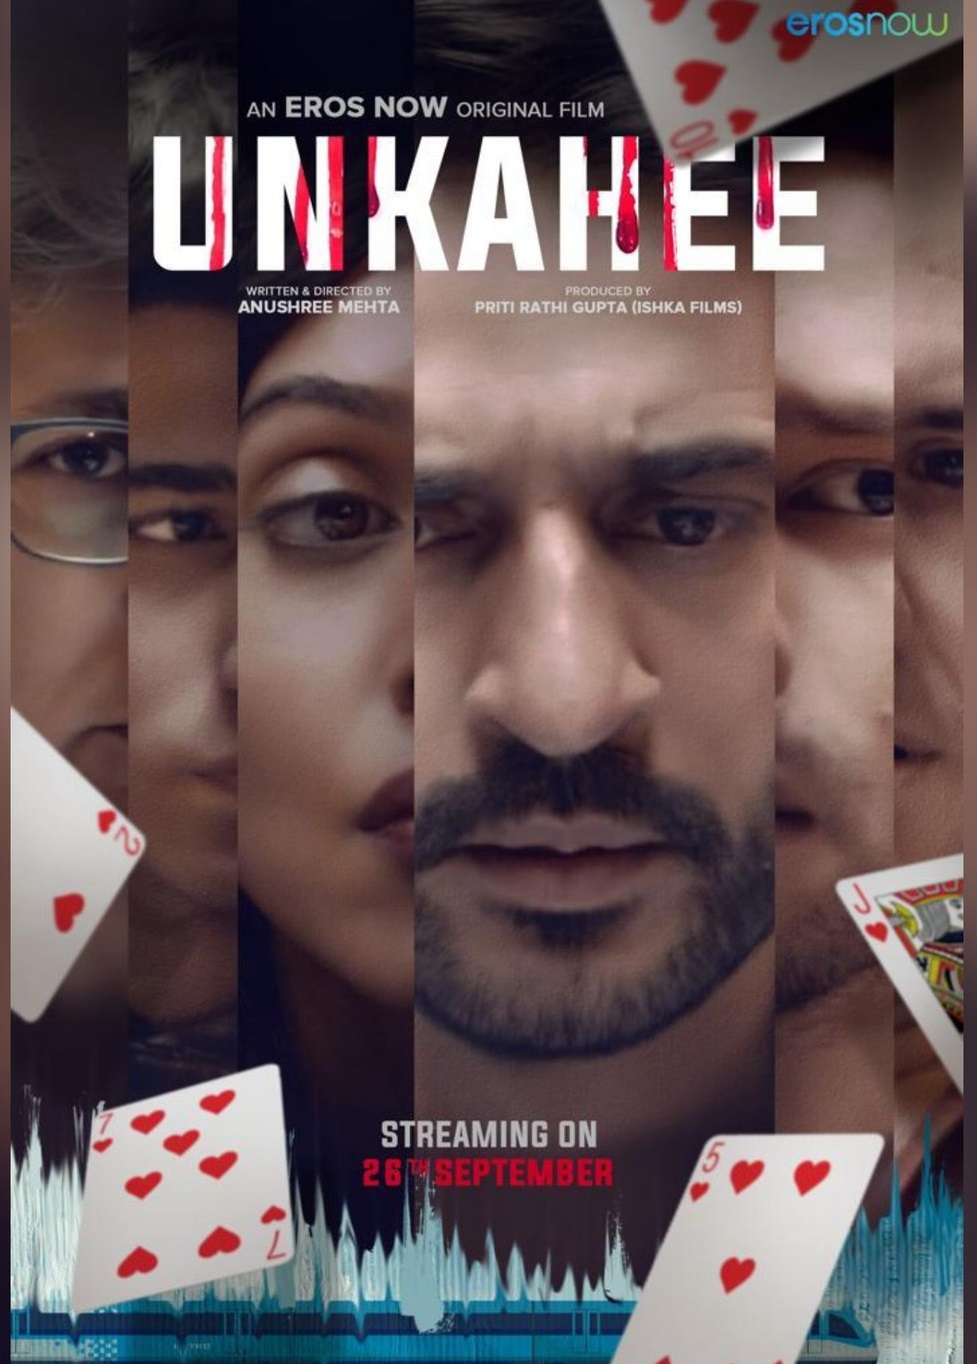 Unkahee 2020 Hindi 1080p ErosNow HDRip ESubs 1GB Download